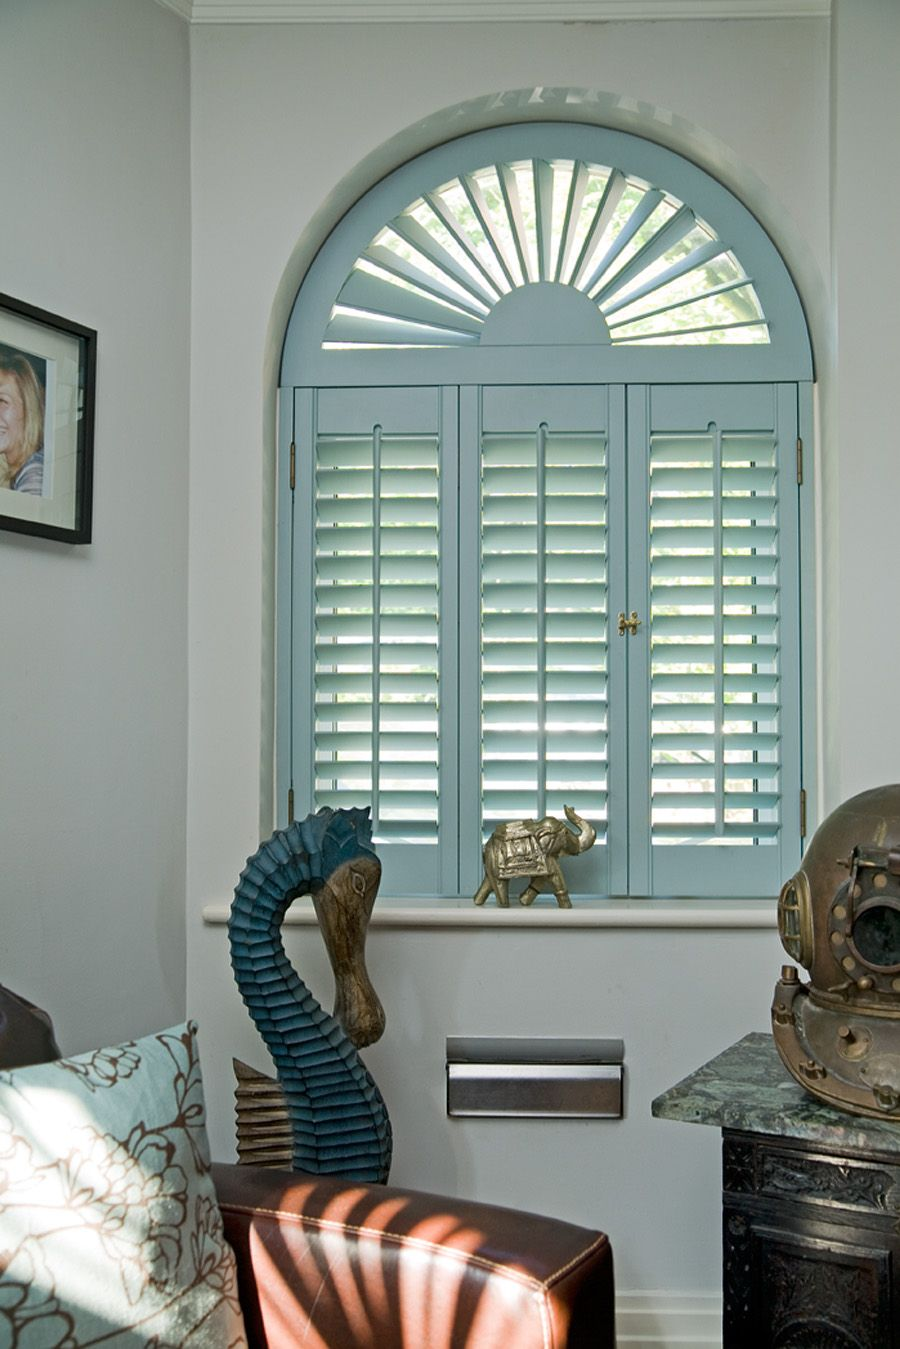 Indoor plantation shutters interior shutters wood shutters plantation shutter plantation - Home depot window shutters interiors ...